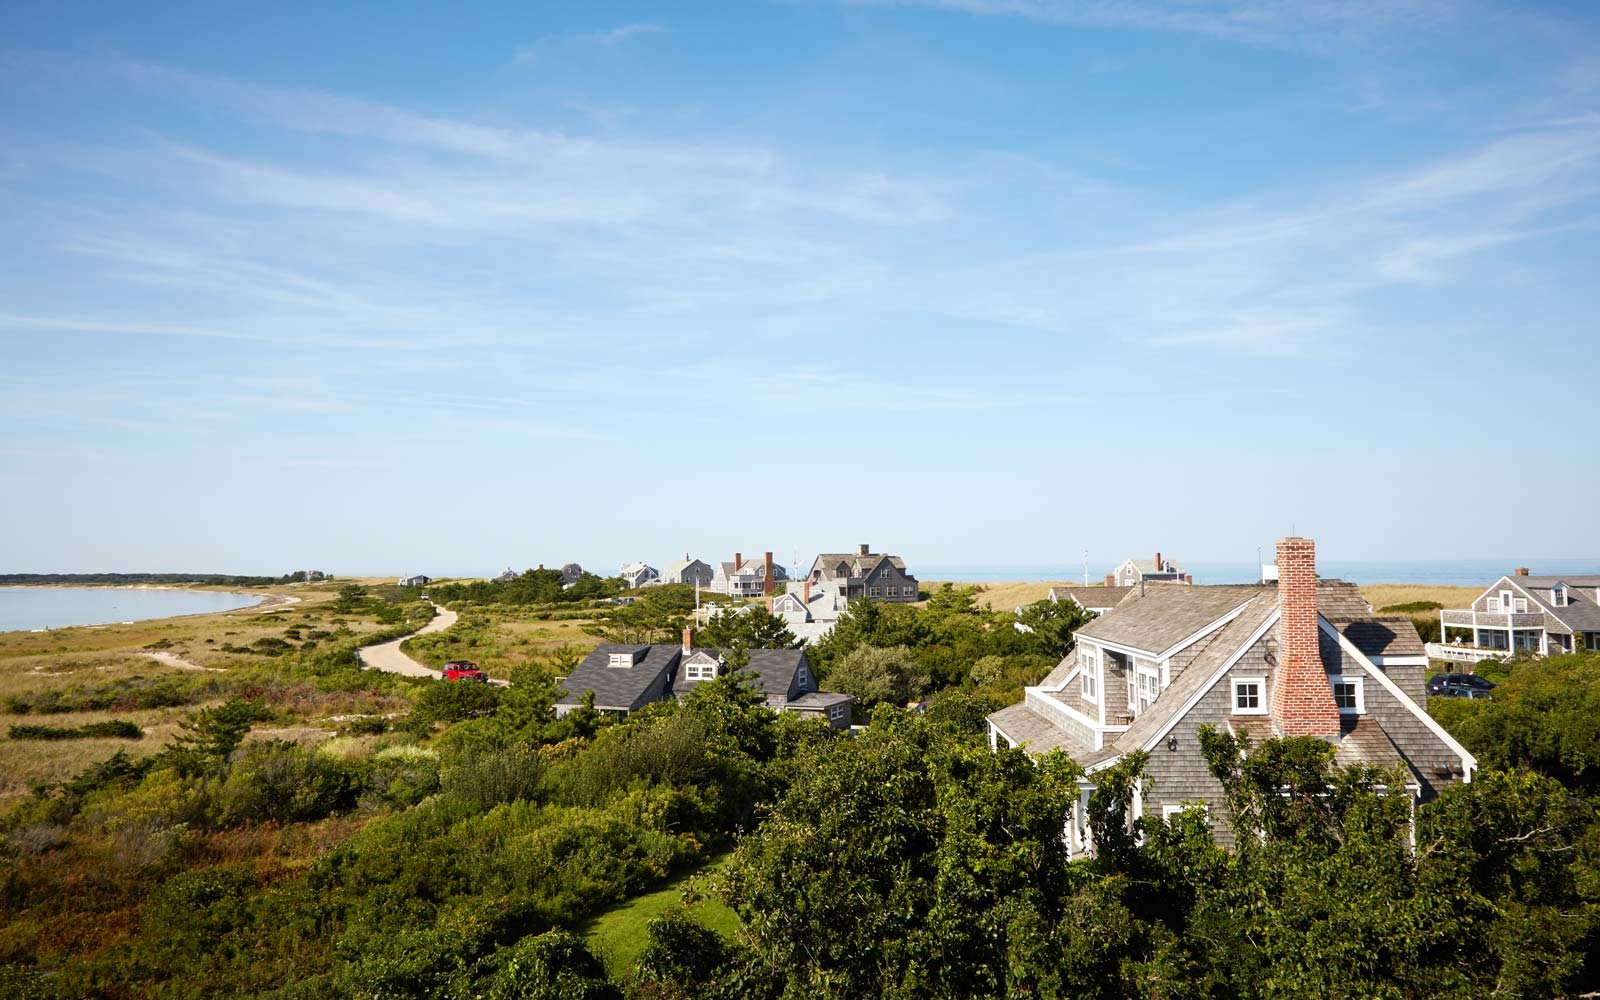 2. Nantucket, Massachusetts